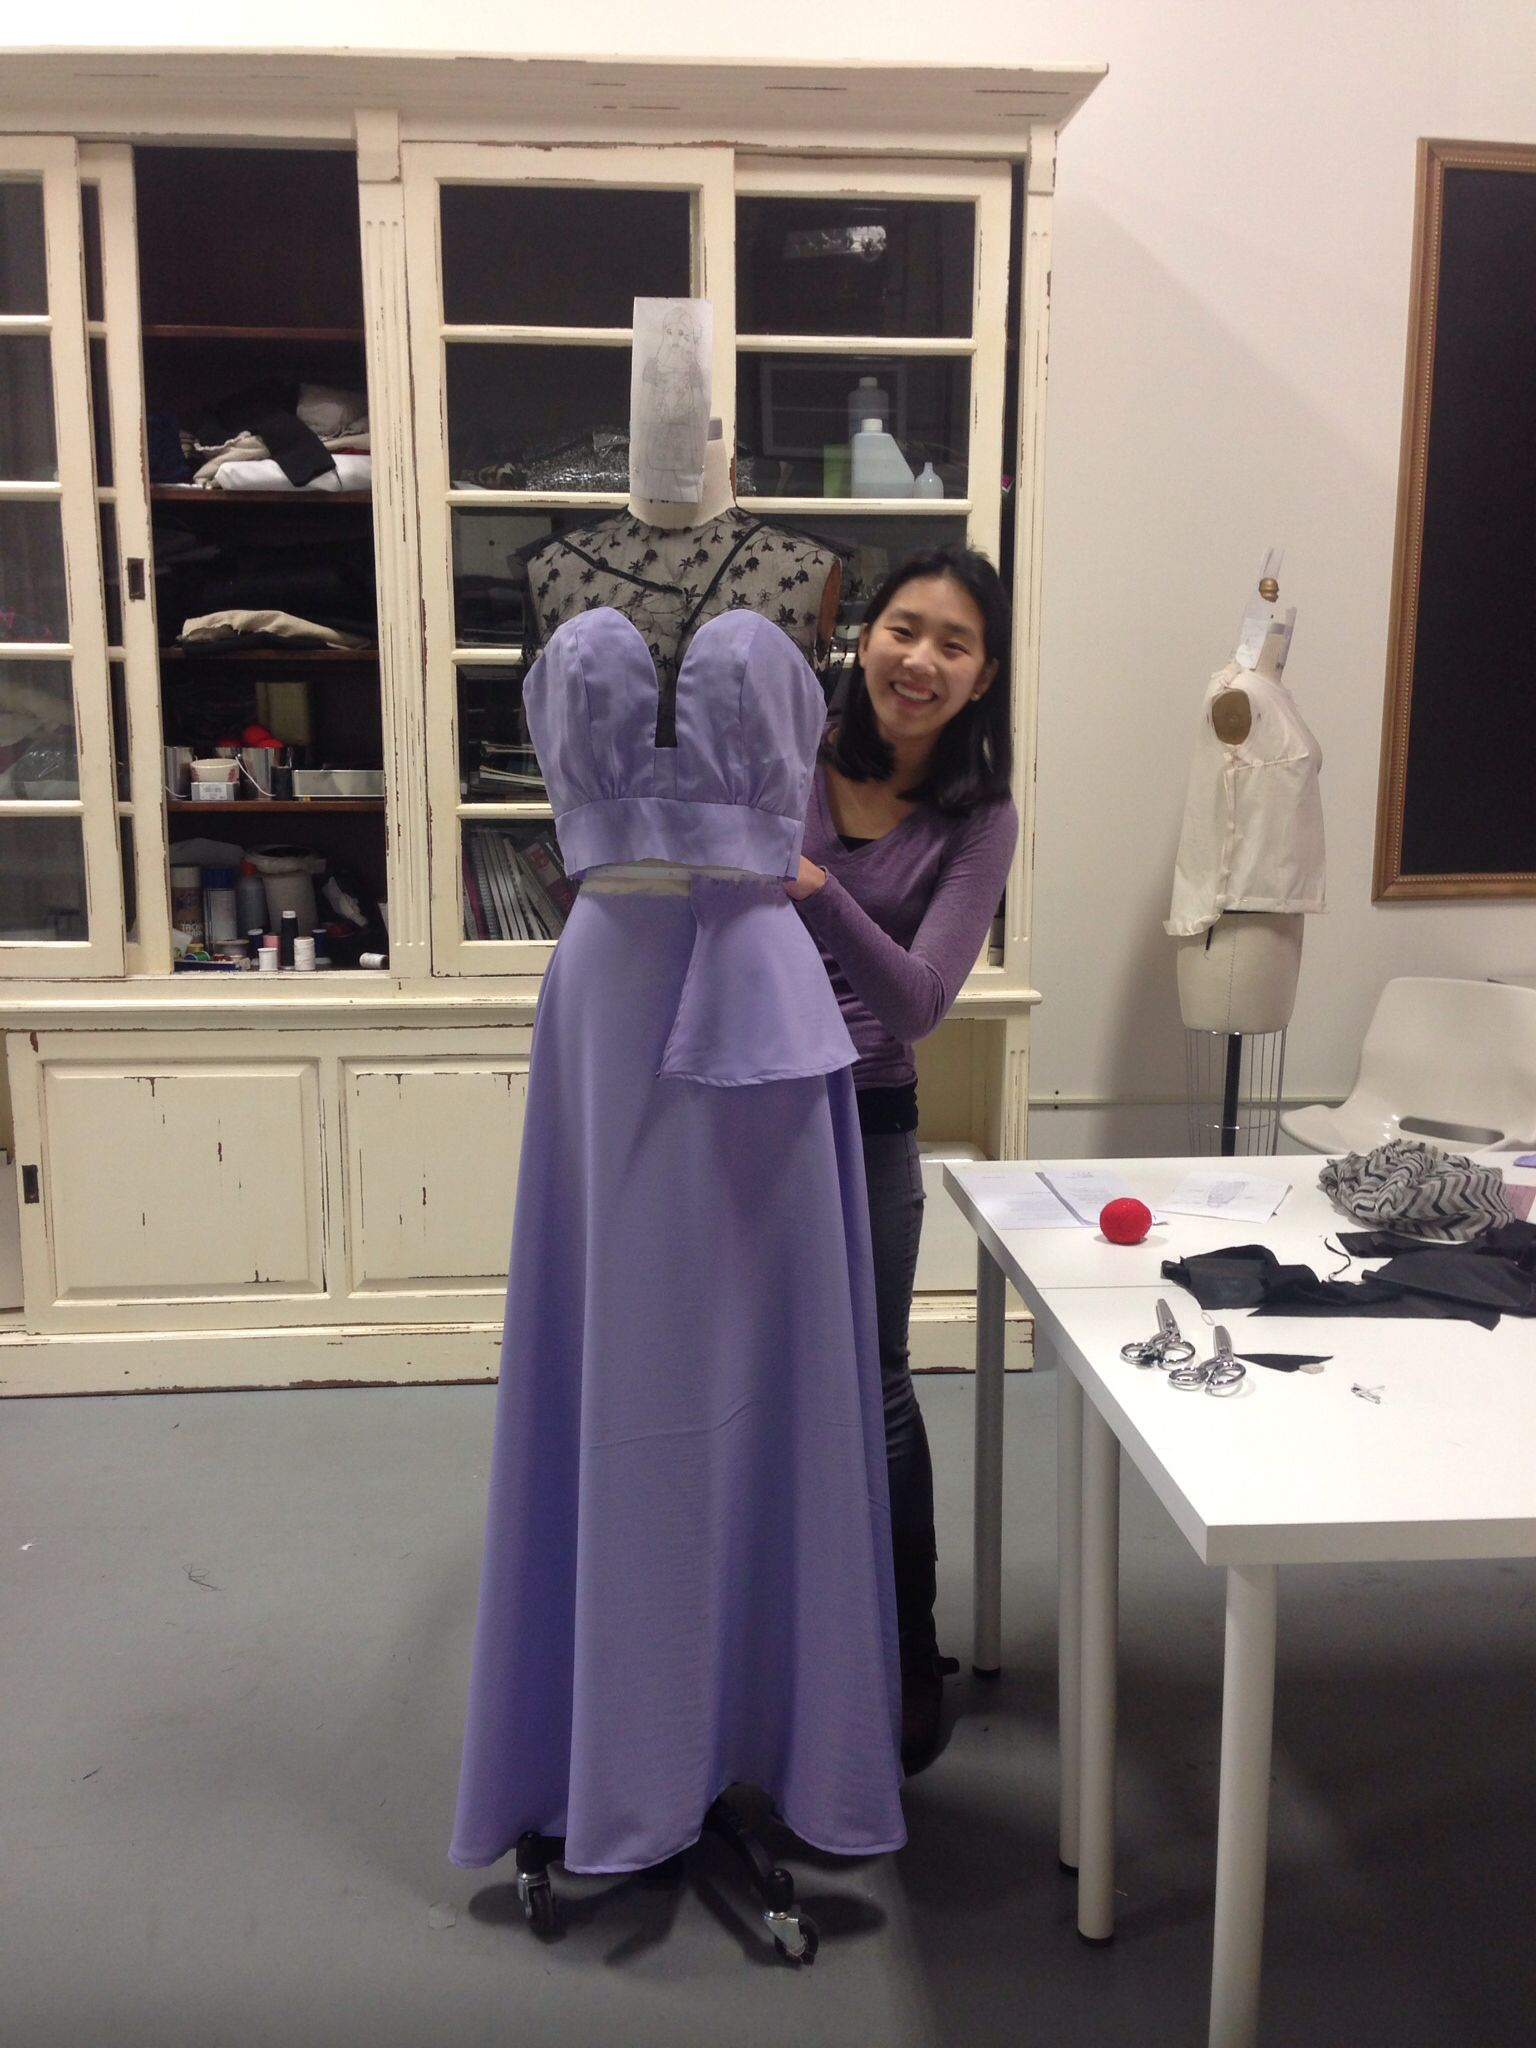 My student finishing up a dress for a competition only at